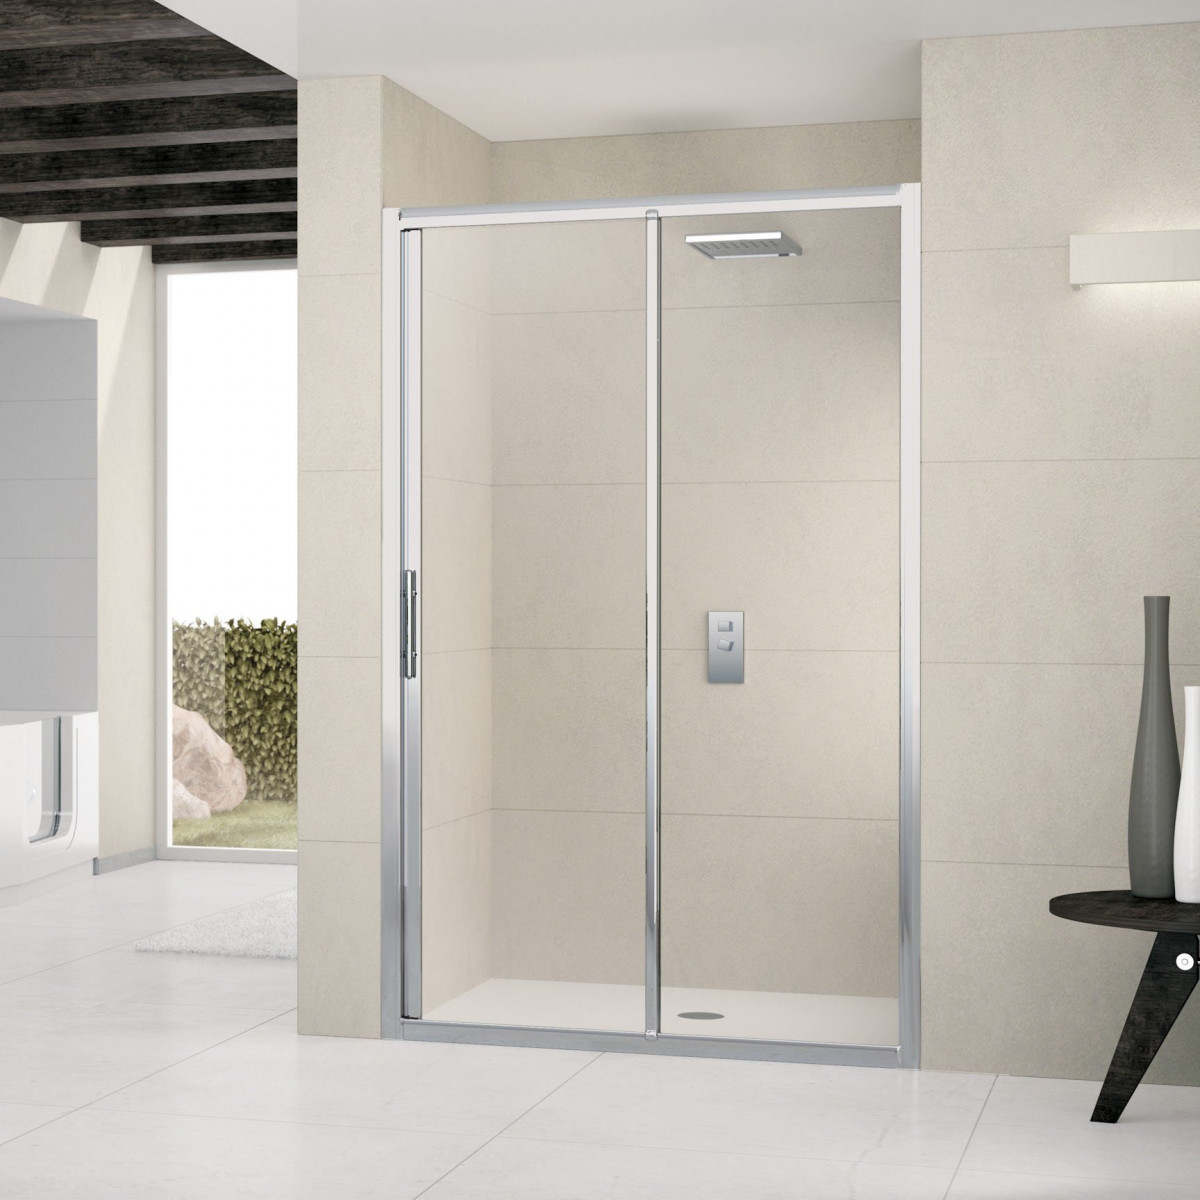 Novellini lunes 1400 2p sliding shower door lunes2p132 for 1400 sliding shower door